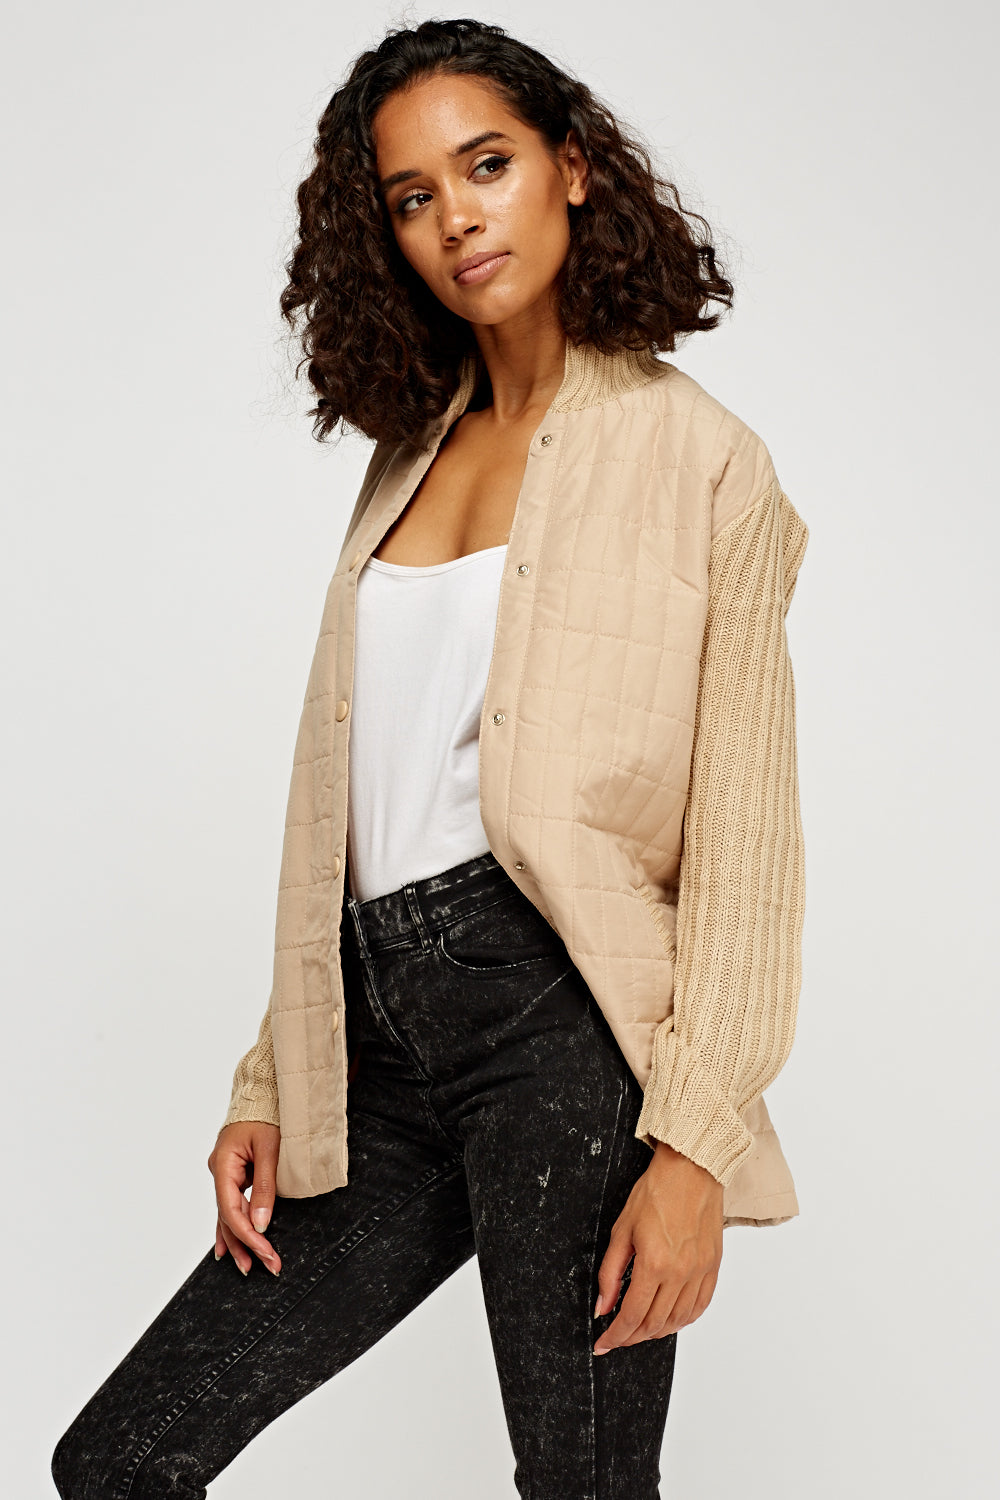 Priscilla Light Knitted Sleeve Contrast Jacket - woven-trends